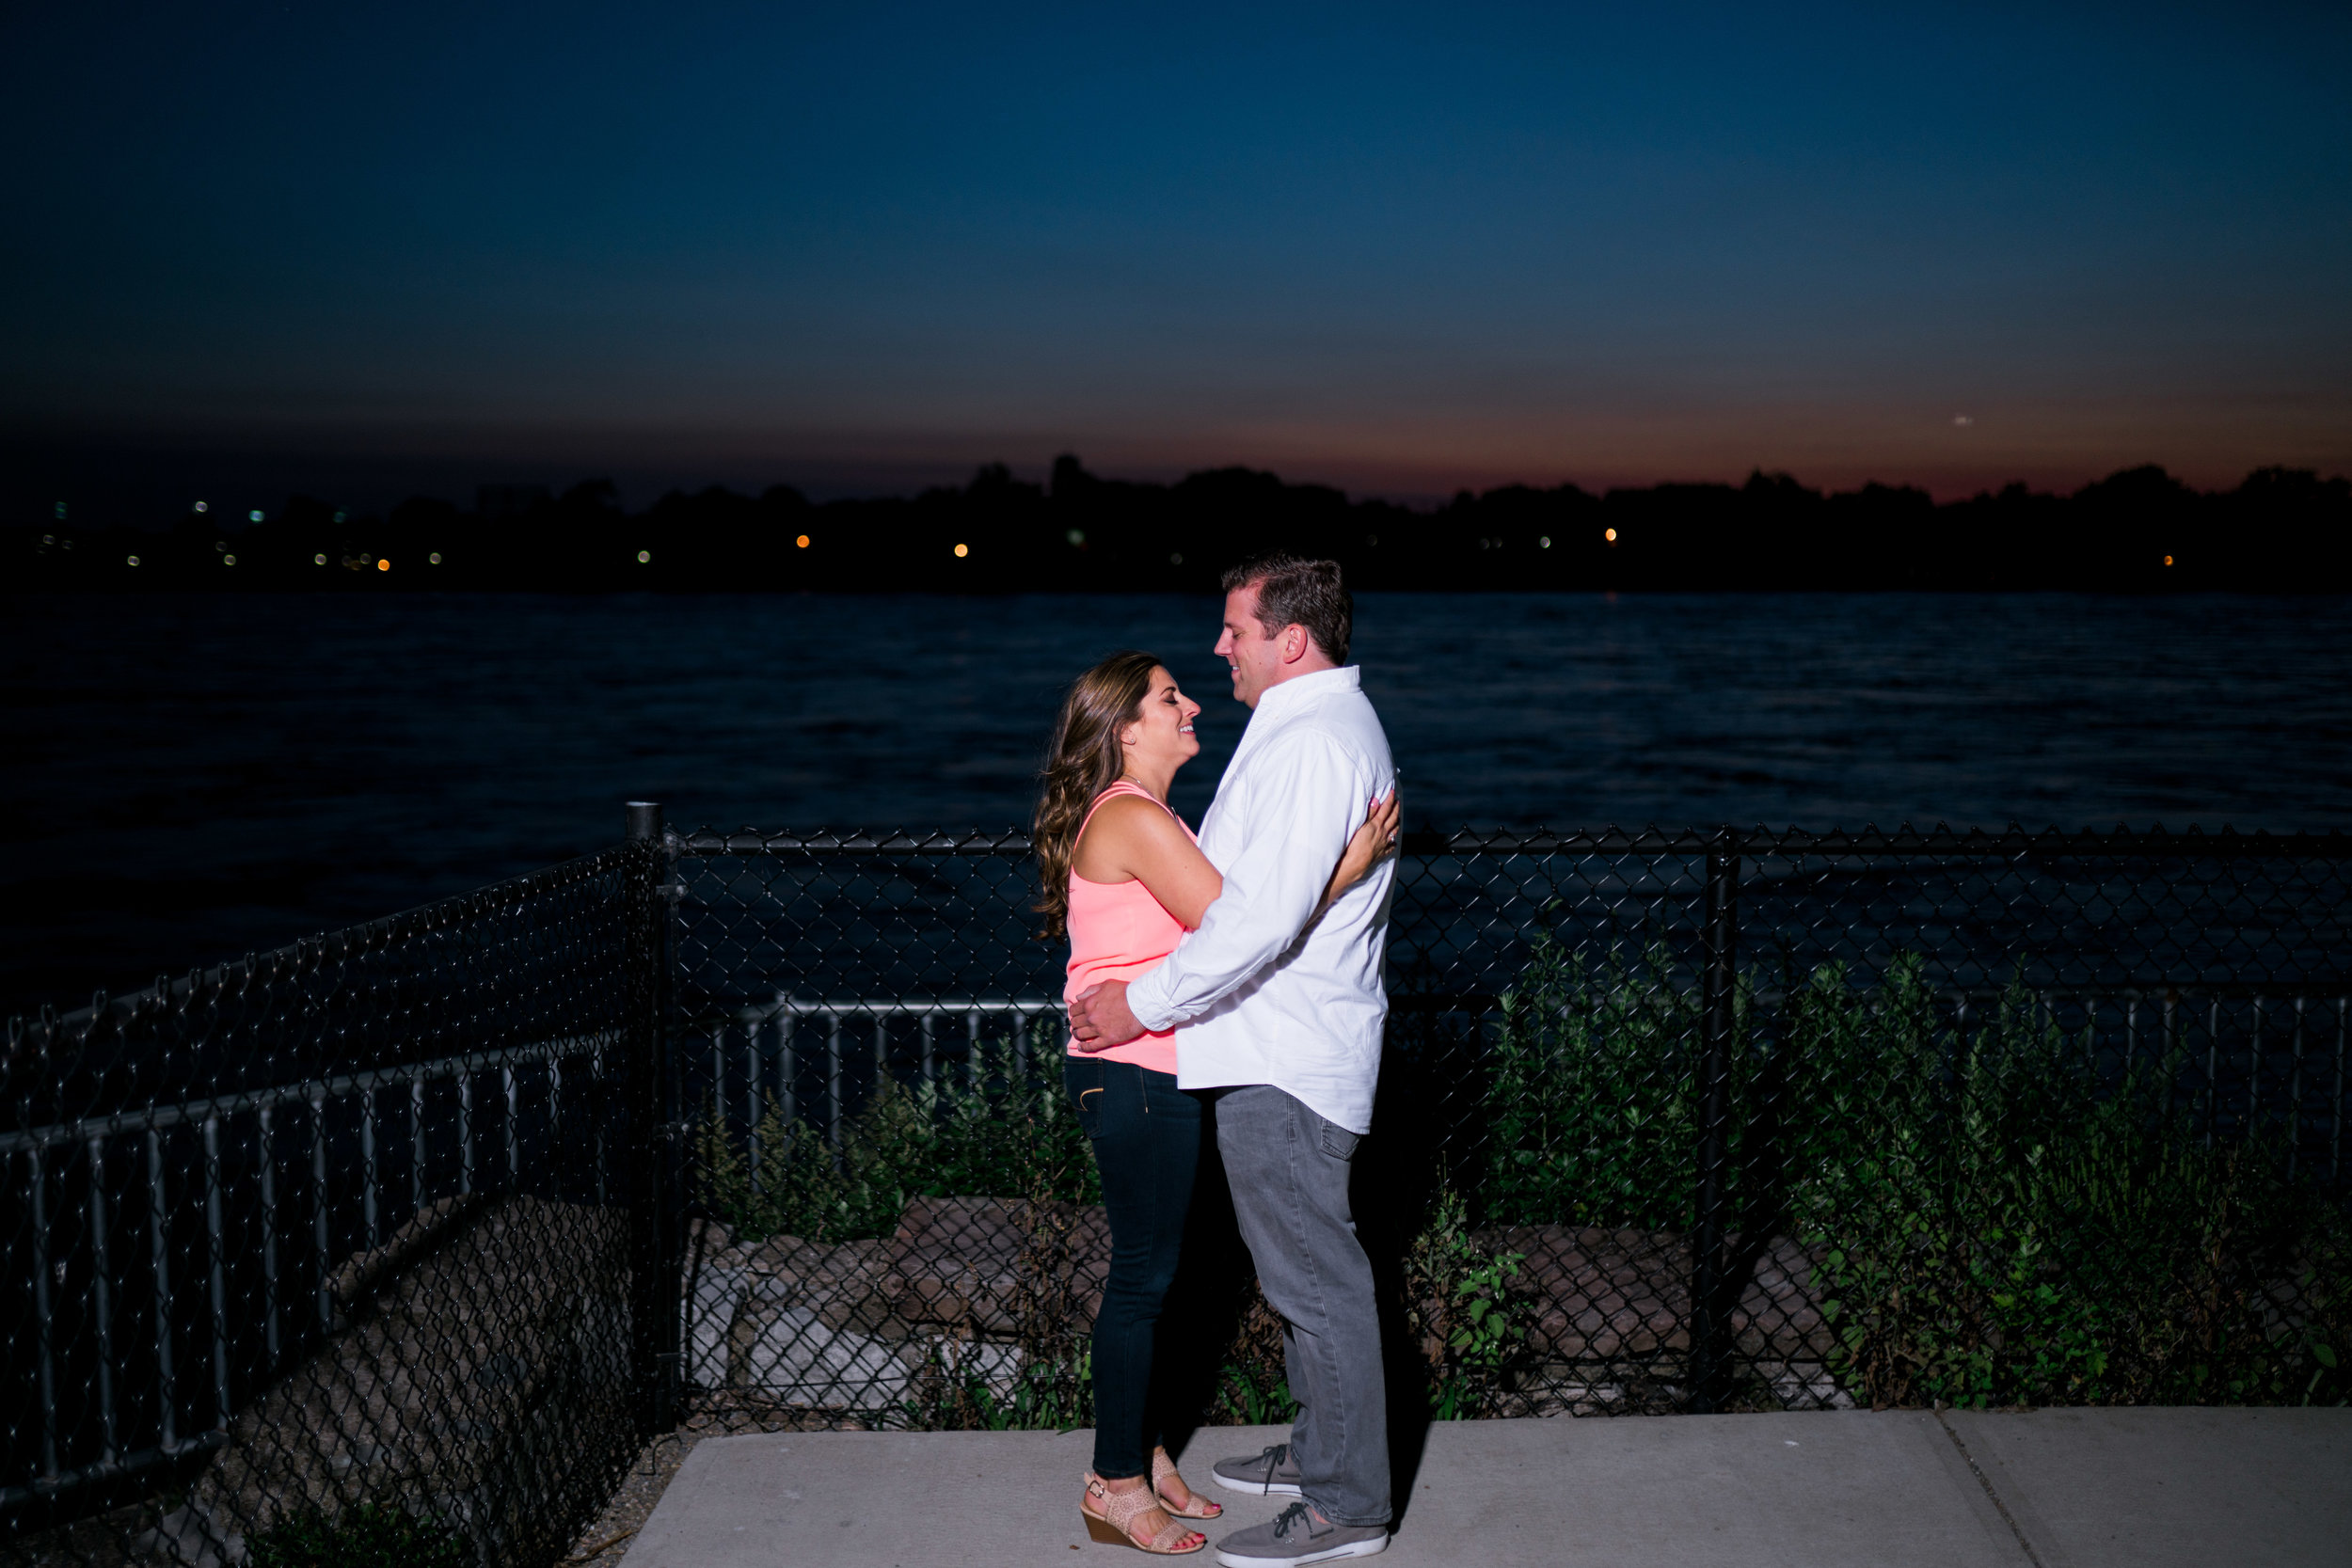 Nancy and David Engagement Photography by Stefan Ludwig in Buffalo NY-35.jpg